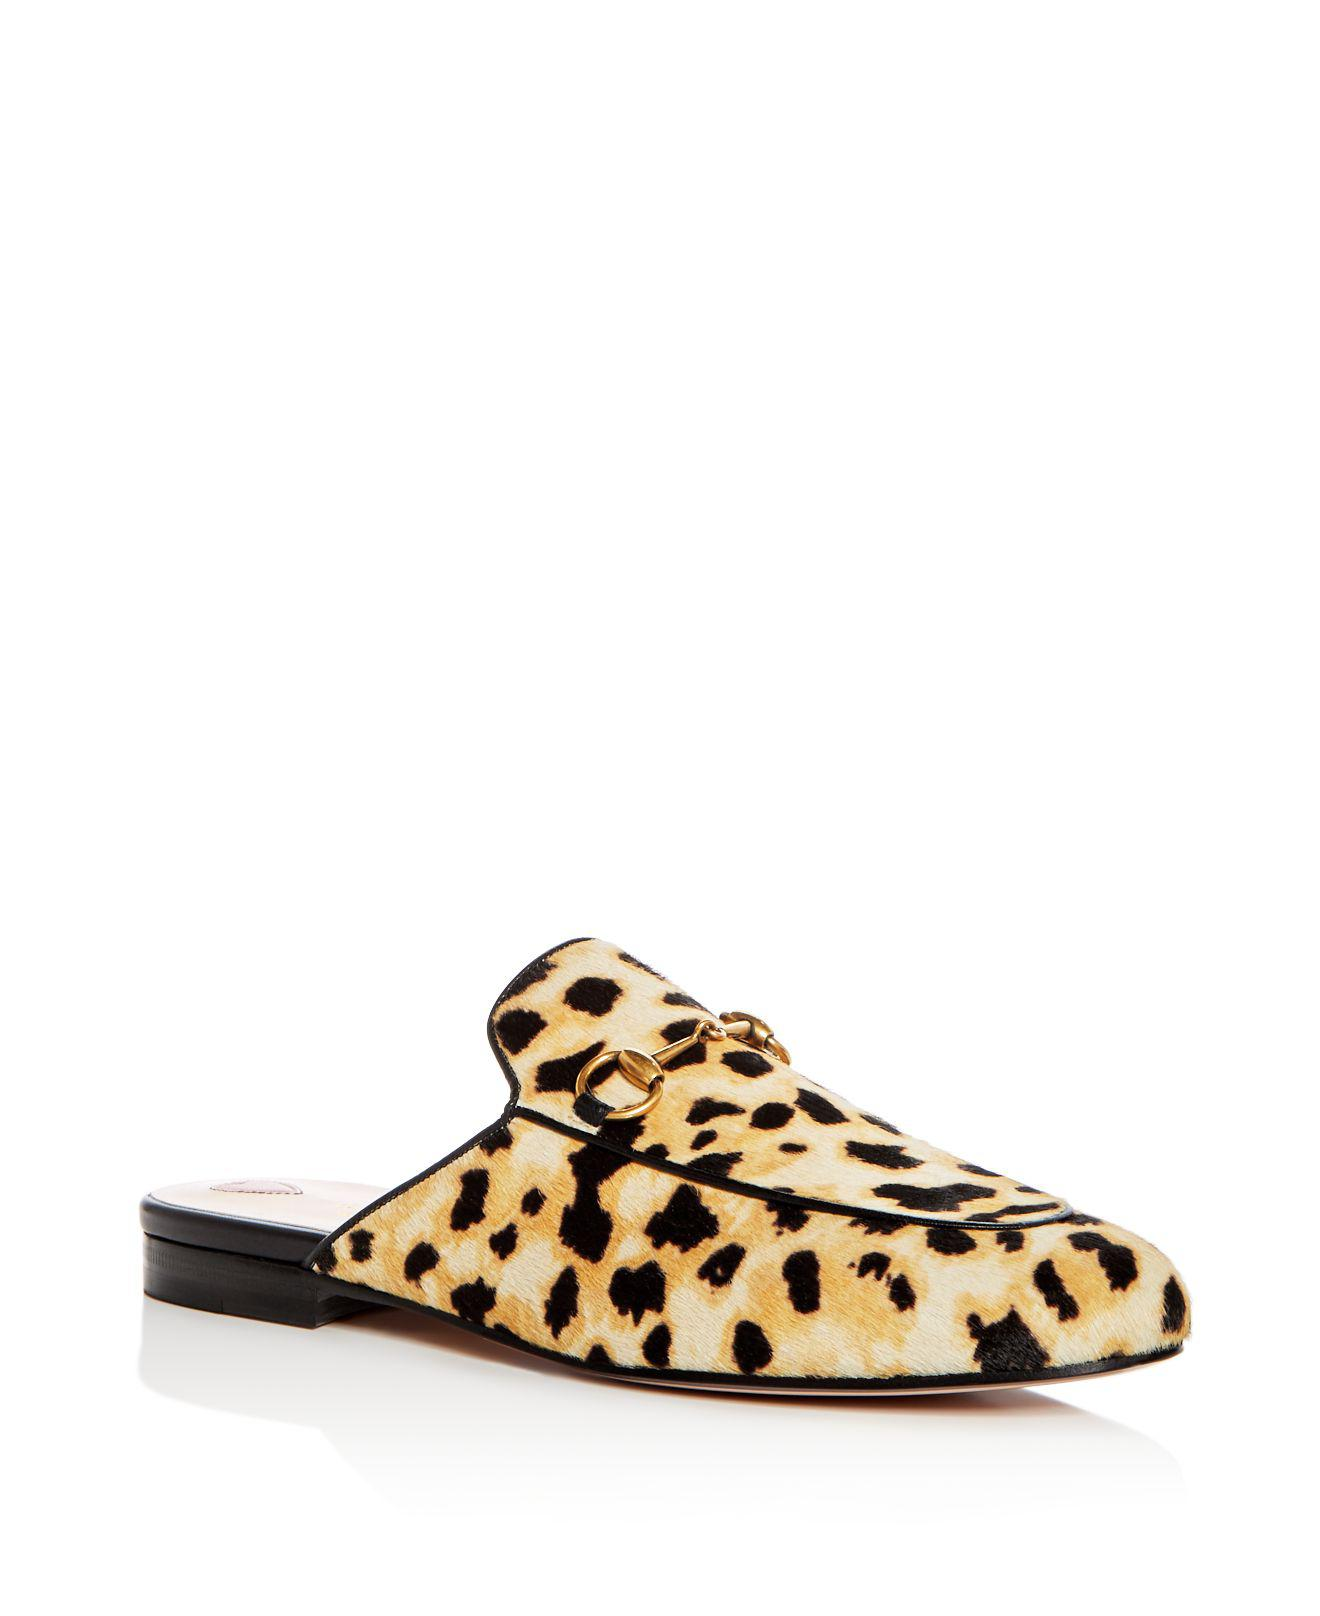 Gucci Leopard Princetown Pony Mules - Lyst